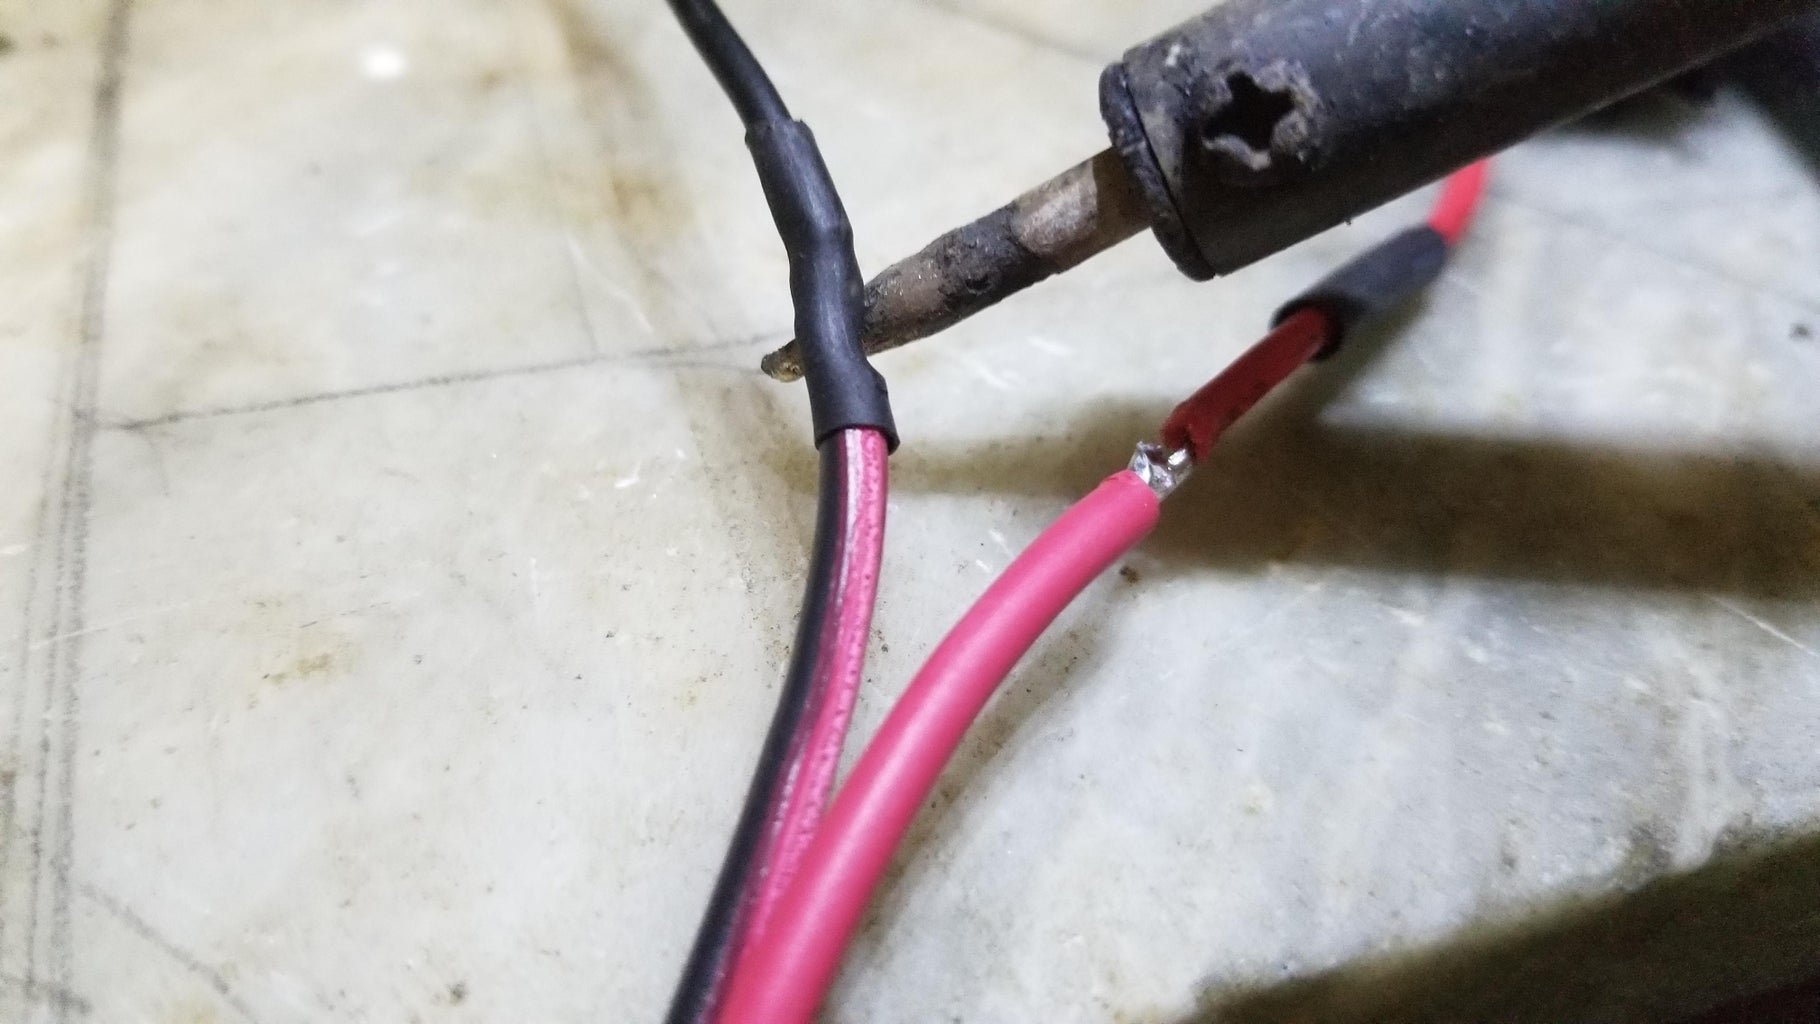 (Re)wiring the Motor